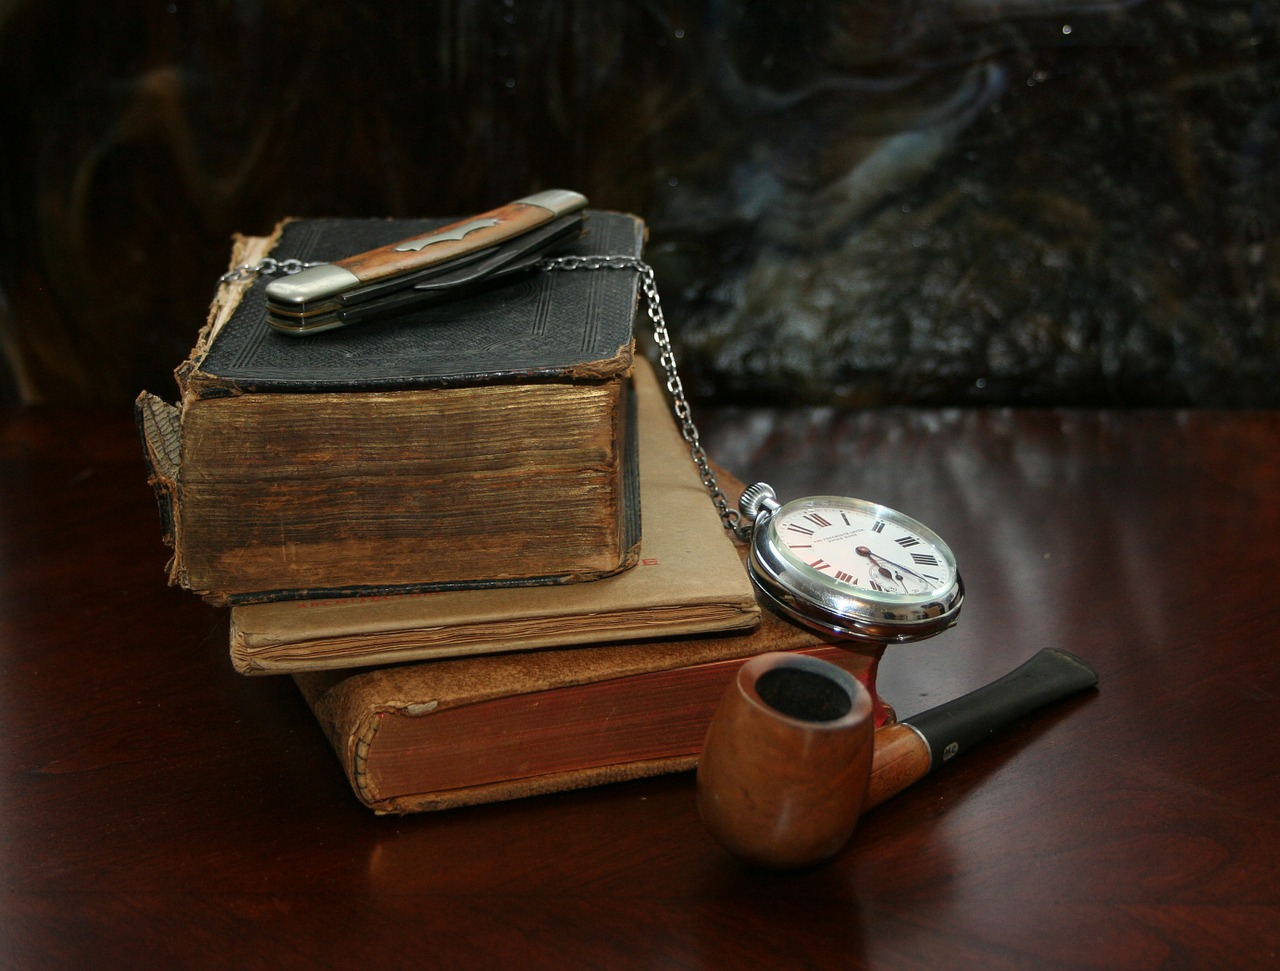 books watch knife free photo